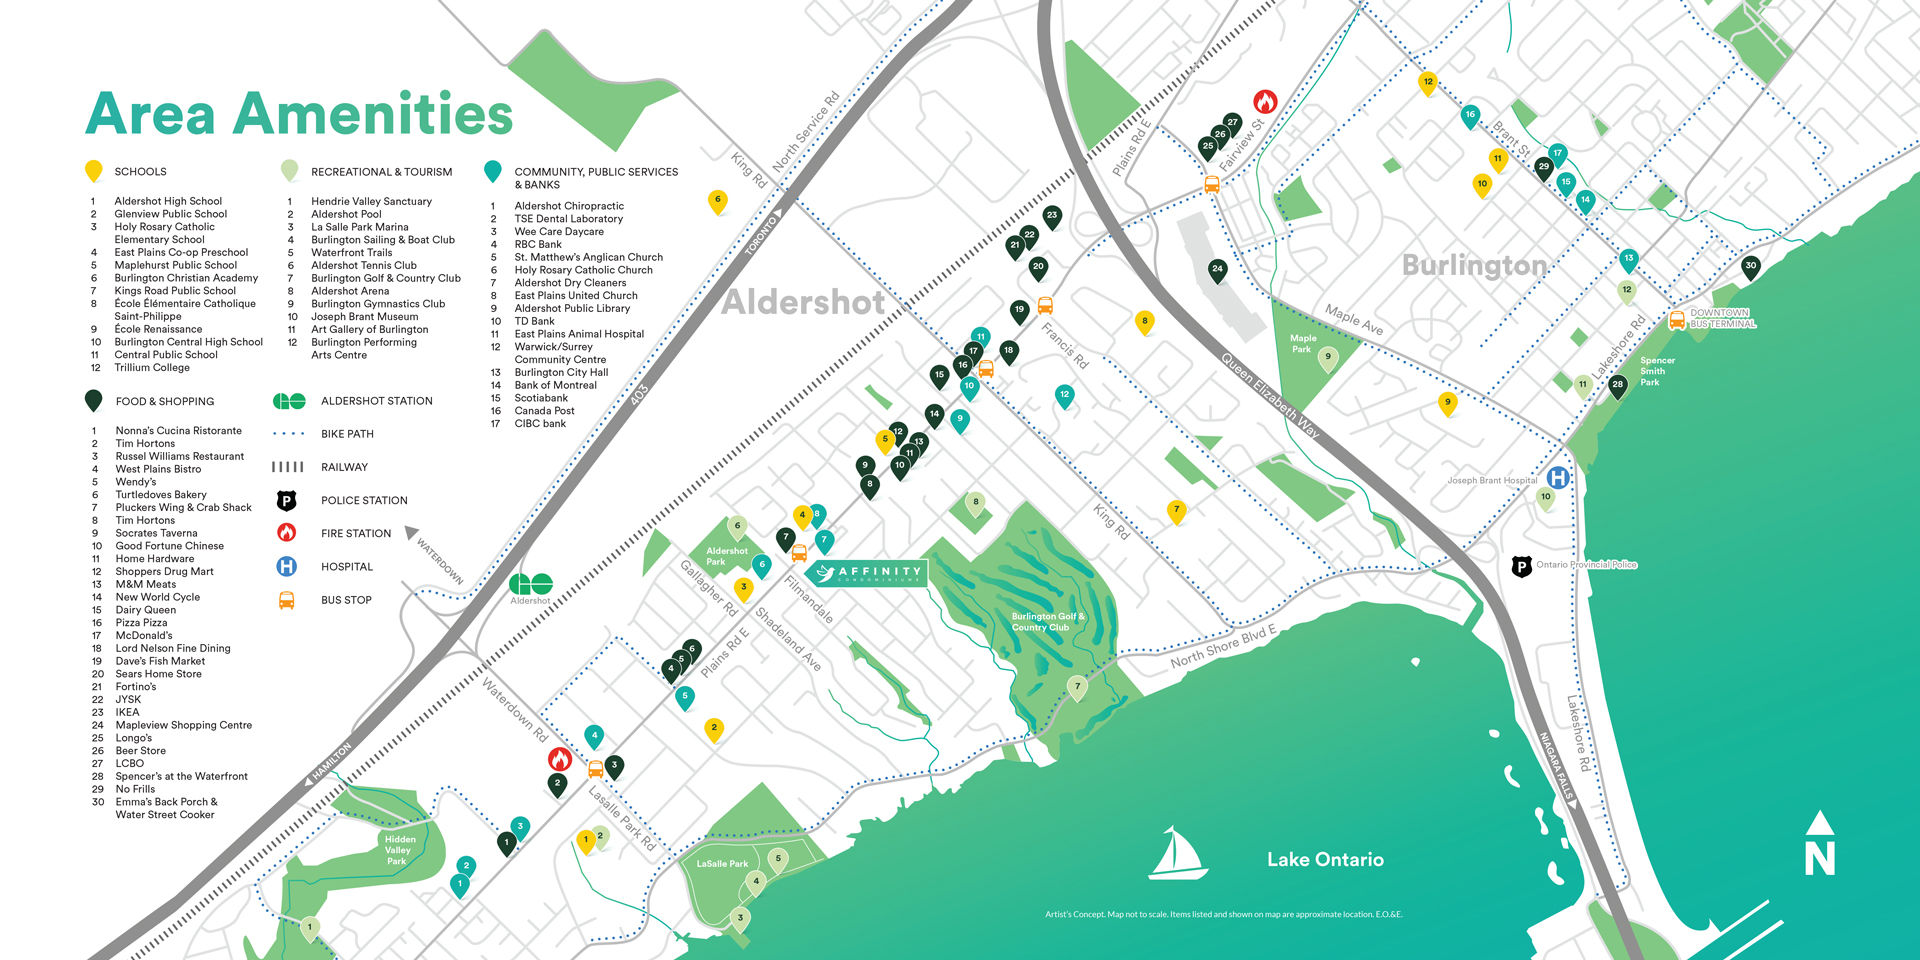 Site plan for Affinity Condominiums in Burlington, Ontario